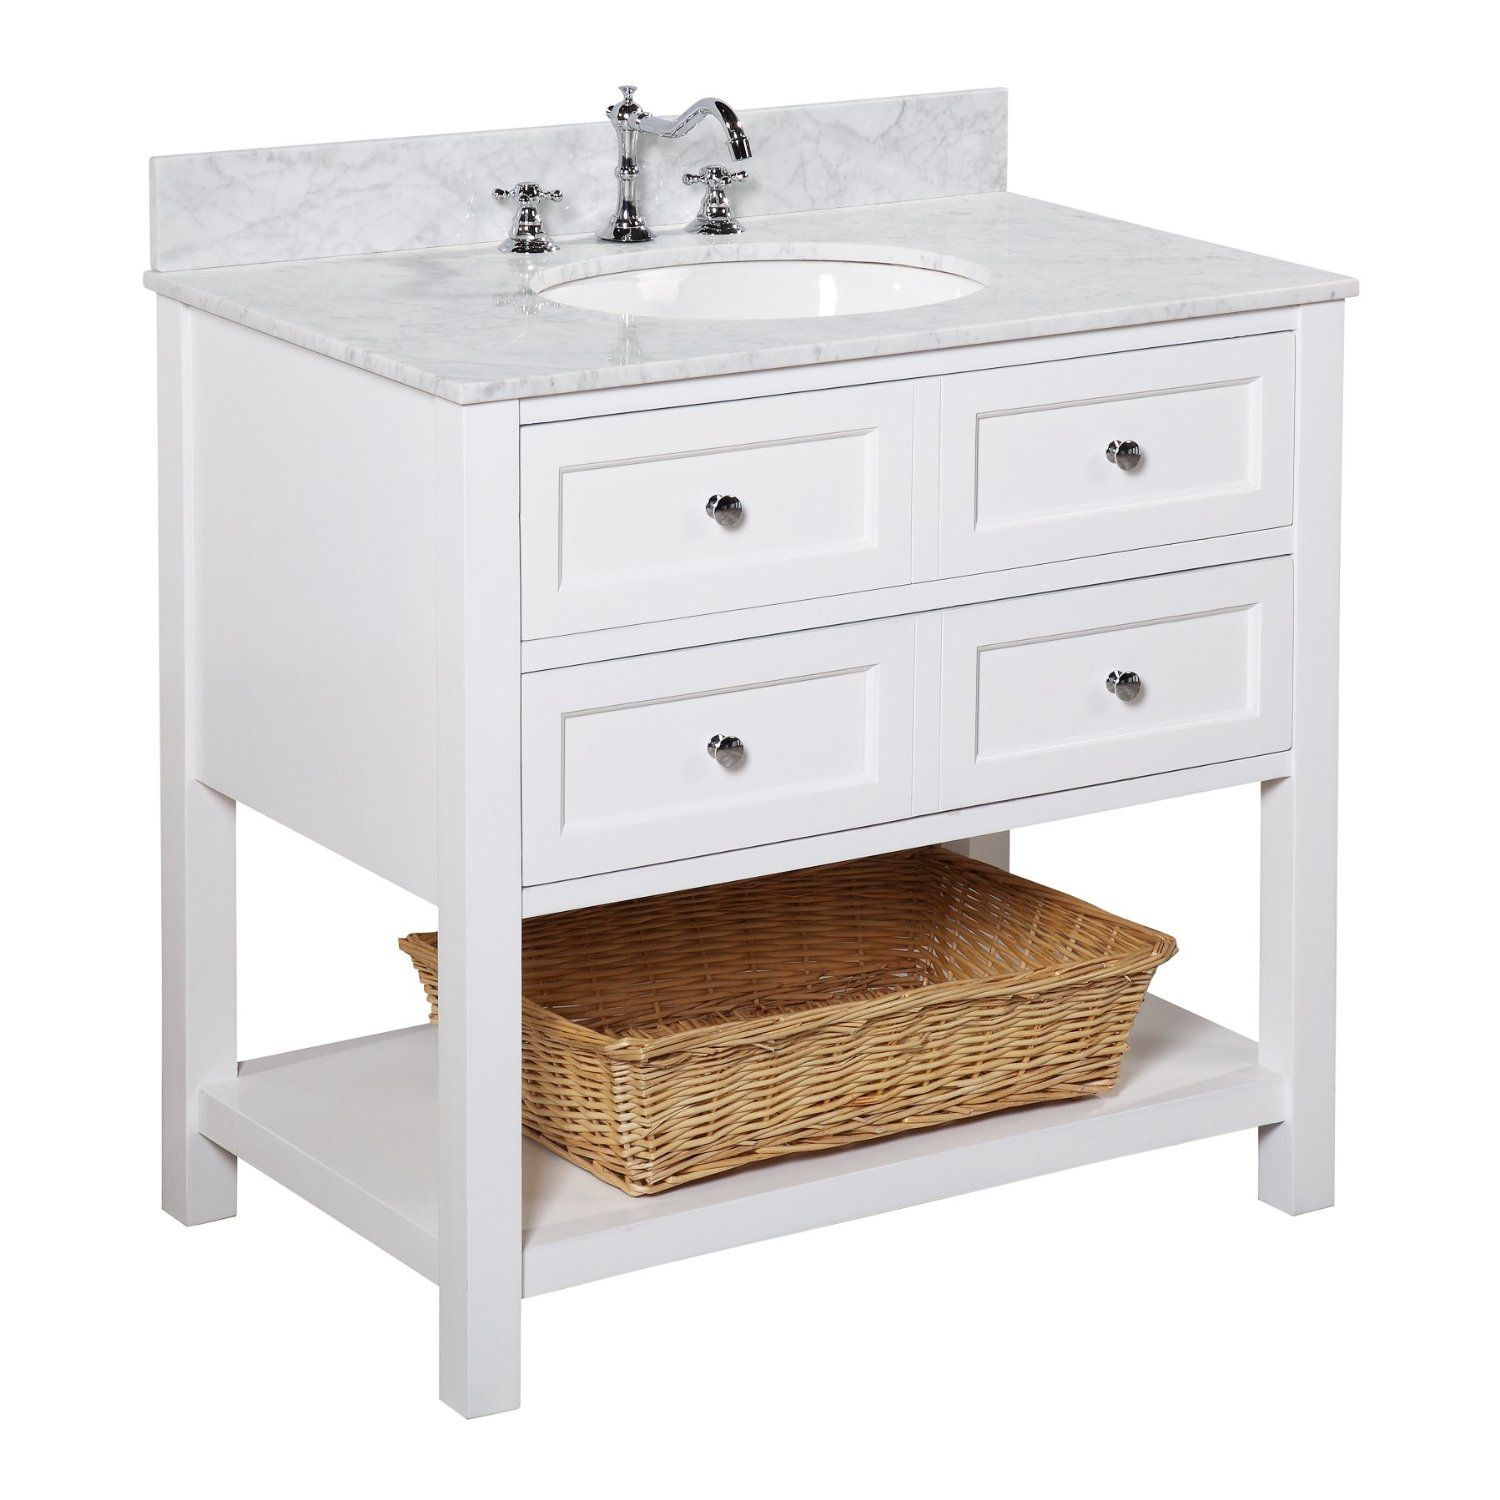 New Yorker 36 Inch Bathroom Vanity Carrara White Italian